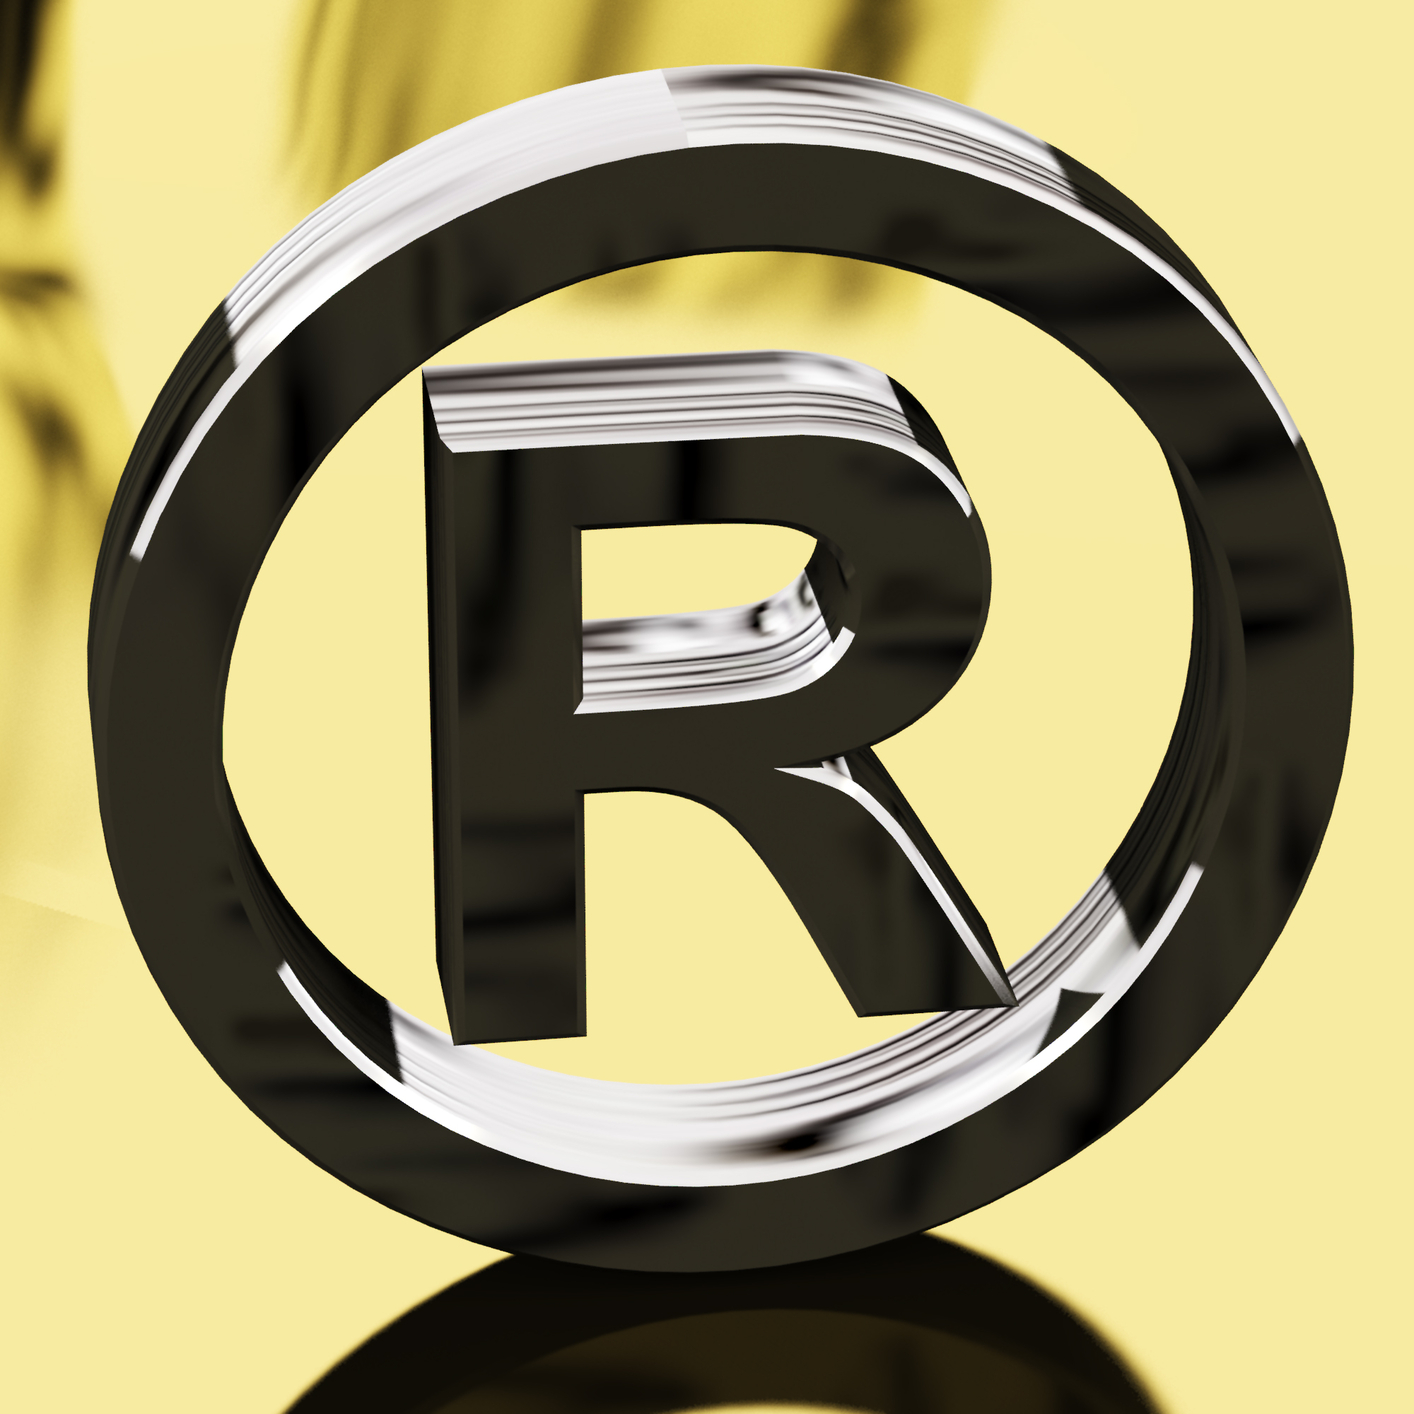 Need help registering a trademark?